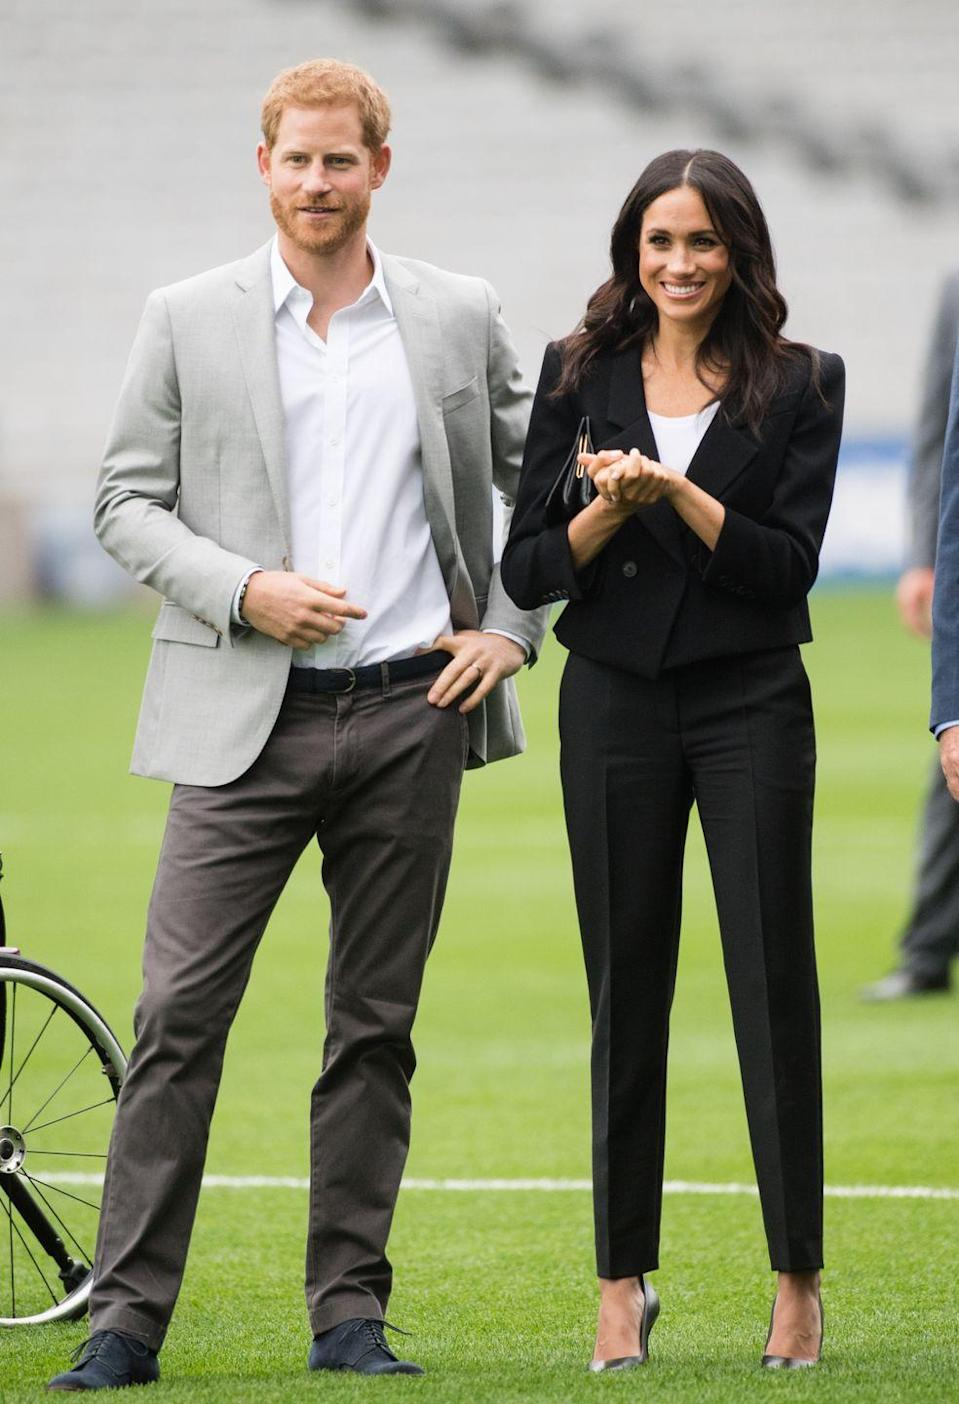 "<p><a href=""https://www.townandcountrymag.com/style/fashion-trends/a22113279/meghan-markle-black-pants-suit-dublin-royal-visit-2018/"" rel=""nofollow noopener"" target=""_blank"" data-ylk=""slk:For her second outfit of the day,"" class=""link rapid-noclick-resp"">For her second outfit of the day,</a> Meghan wore a sleek Givenchy pantsuit with <a href=""https://www.sarahflint.com/products/perfect-pump-100-black-nappa-2?variant=8211317948513&utm_expid=.pKgR4p9wQFKF-hBYSZvlWQ.1&utm_referrer="" rel=""nofollow noopener"" target=""_blank"" data-ylk=""slk:a pair of pumps by Sarah Flint"" class=""link rapid-noclick-resp"">a pair of pumps by Sarah Flint</a>, one of the <a href=""https://www.townandcountrymag.com/style/fashion-trends/g12478382/meghan-markle-favorite-fashion-brands-designers/"" rel=""nofollow noopener"" target=""_blank"" data-ylk=""slk:Duchess's favorite designers."" class=""link rapid-noclick-resp"">Duchess's favorite designers.</a></p>"